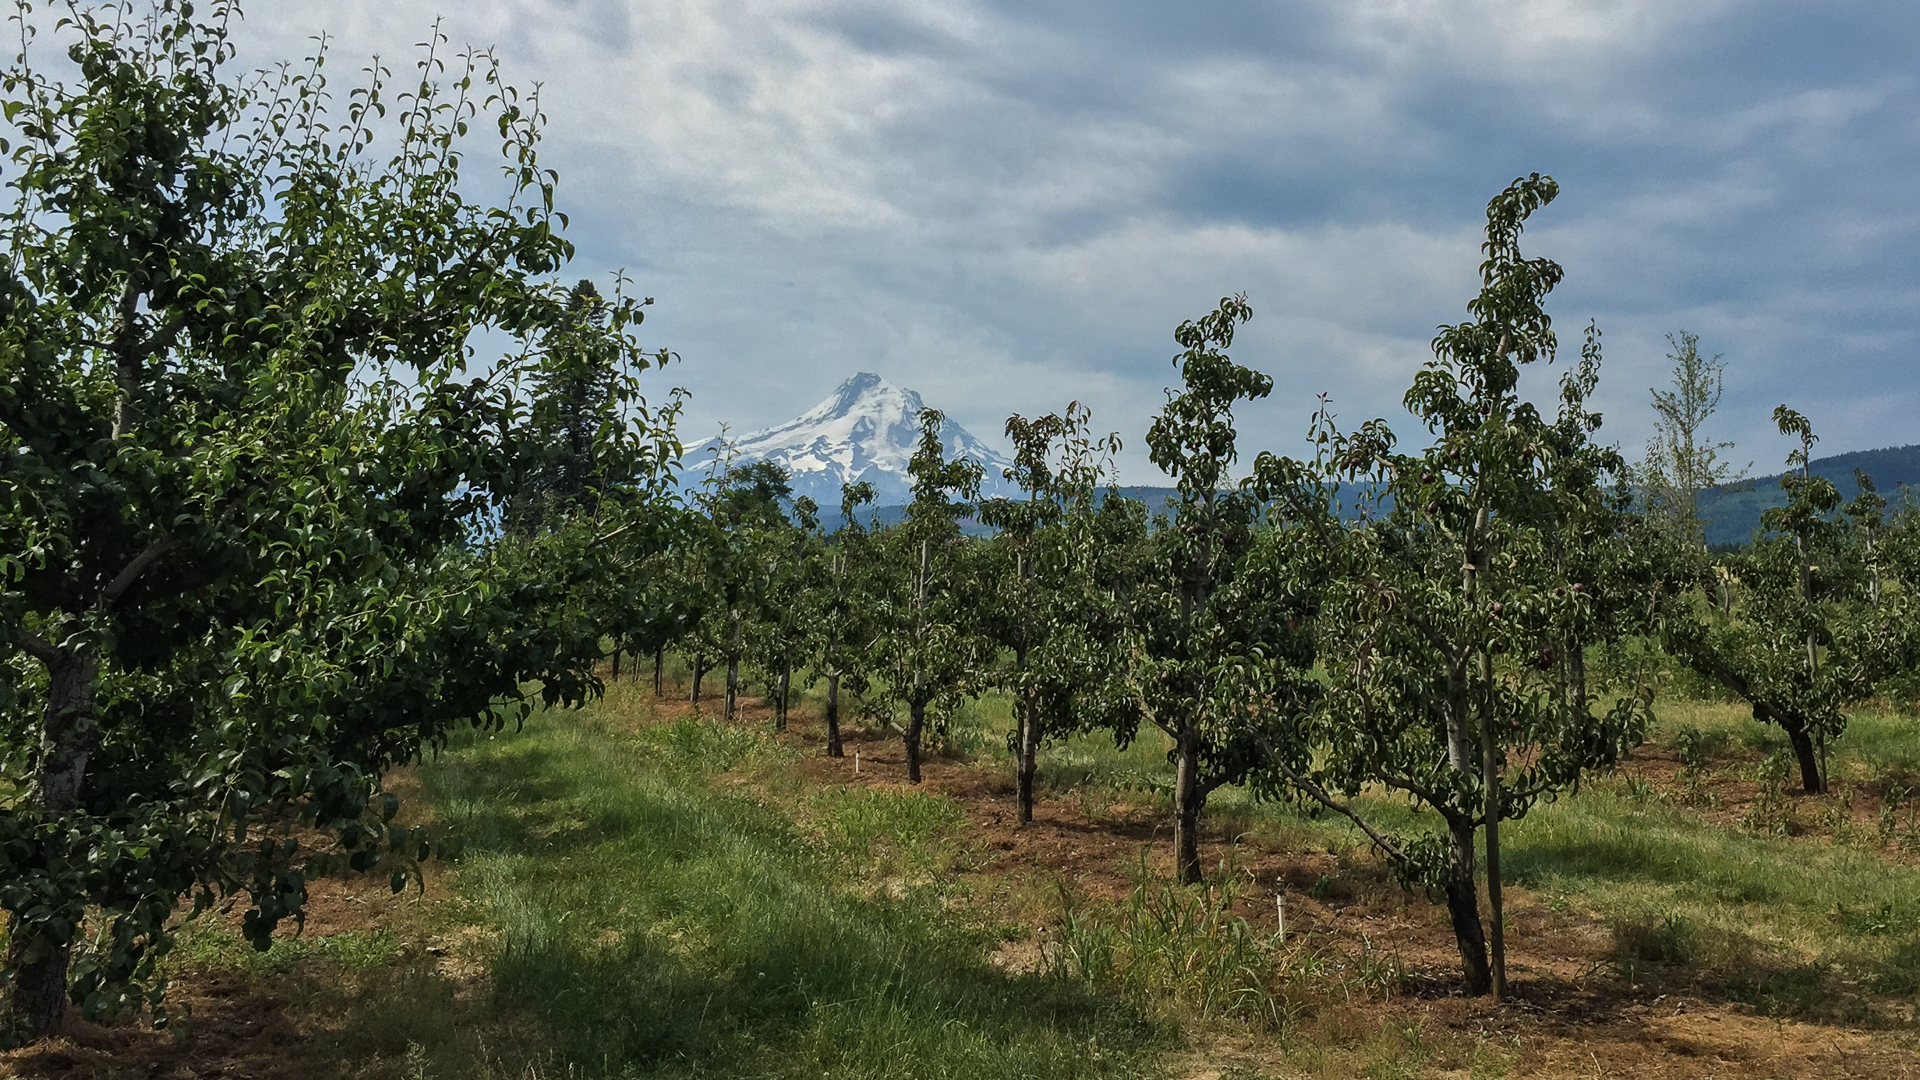 Local orchard, with Mount Hood in the background.